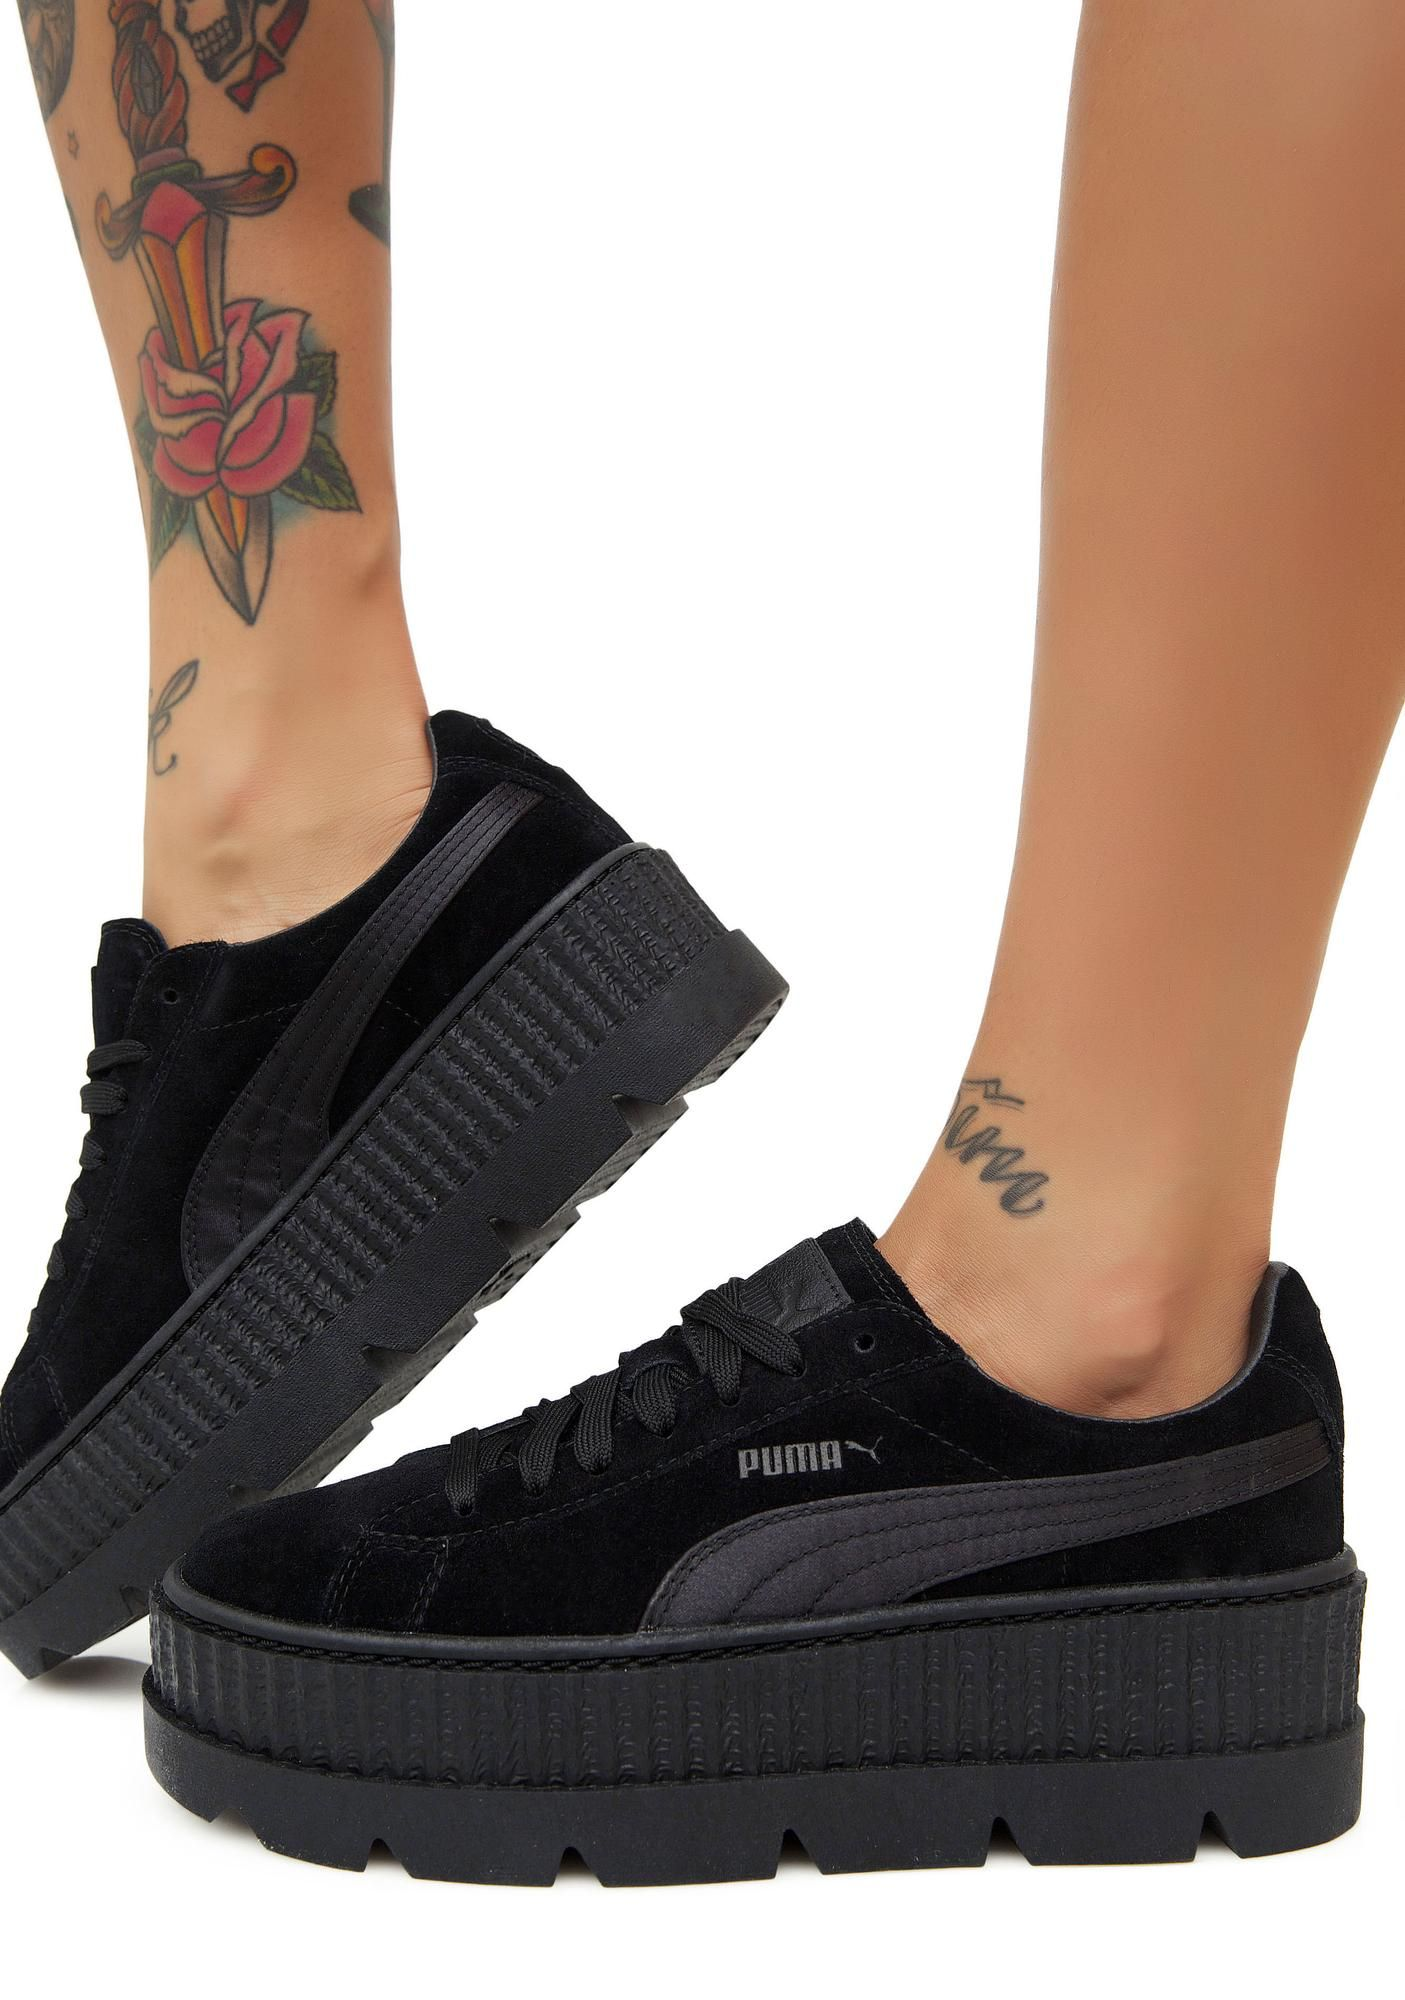 d42cca88d17de3 PUMA Onyx FENTY PUMA by Rihanna Cleated Suede Creepers will take ya up a  notch. These sikk black platform creeper sneakers have supa thikk cleated  soles and ...